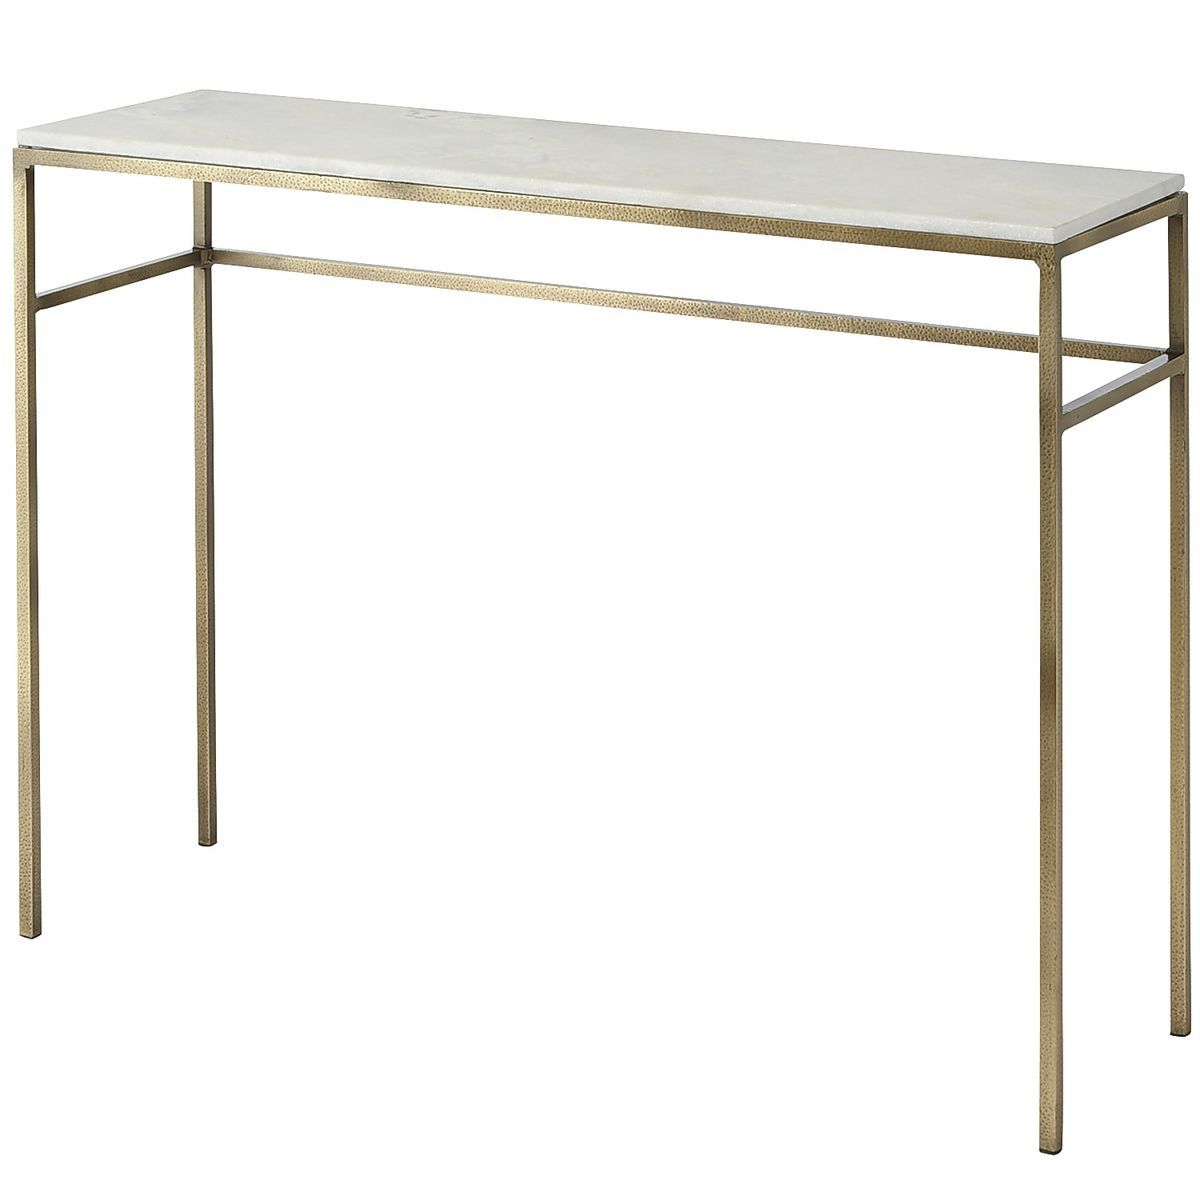 If You're Looking For A Way To Elevate Your Living Space, Ethel Regarding Elke Glass Console Tables With Brass Base (View 11 of 20)